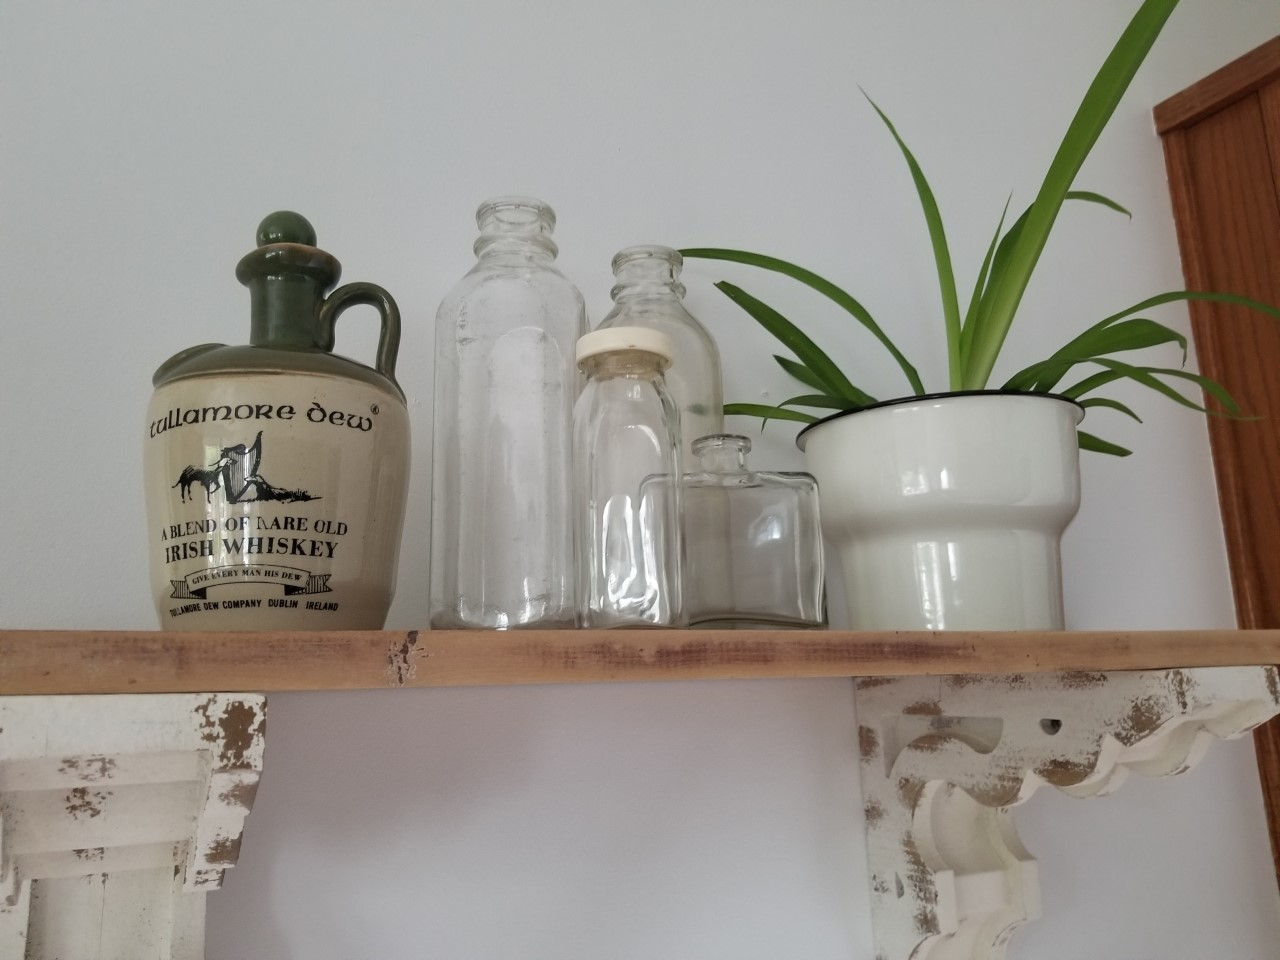 Here's how I style and decorate using the CITRONSYRA   plant pot. The perfect pot for one of my many spider plants that we have throughout our home. This pretty enamel pot has an antique look to it and it goes perfectly with my other antique pieces. A mix of new and old. Love how this display shelf turned out in our kitchen.